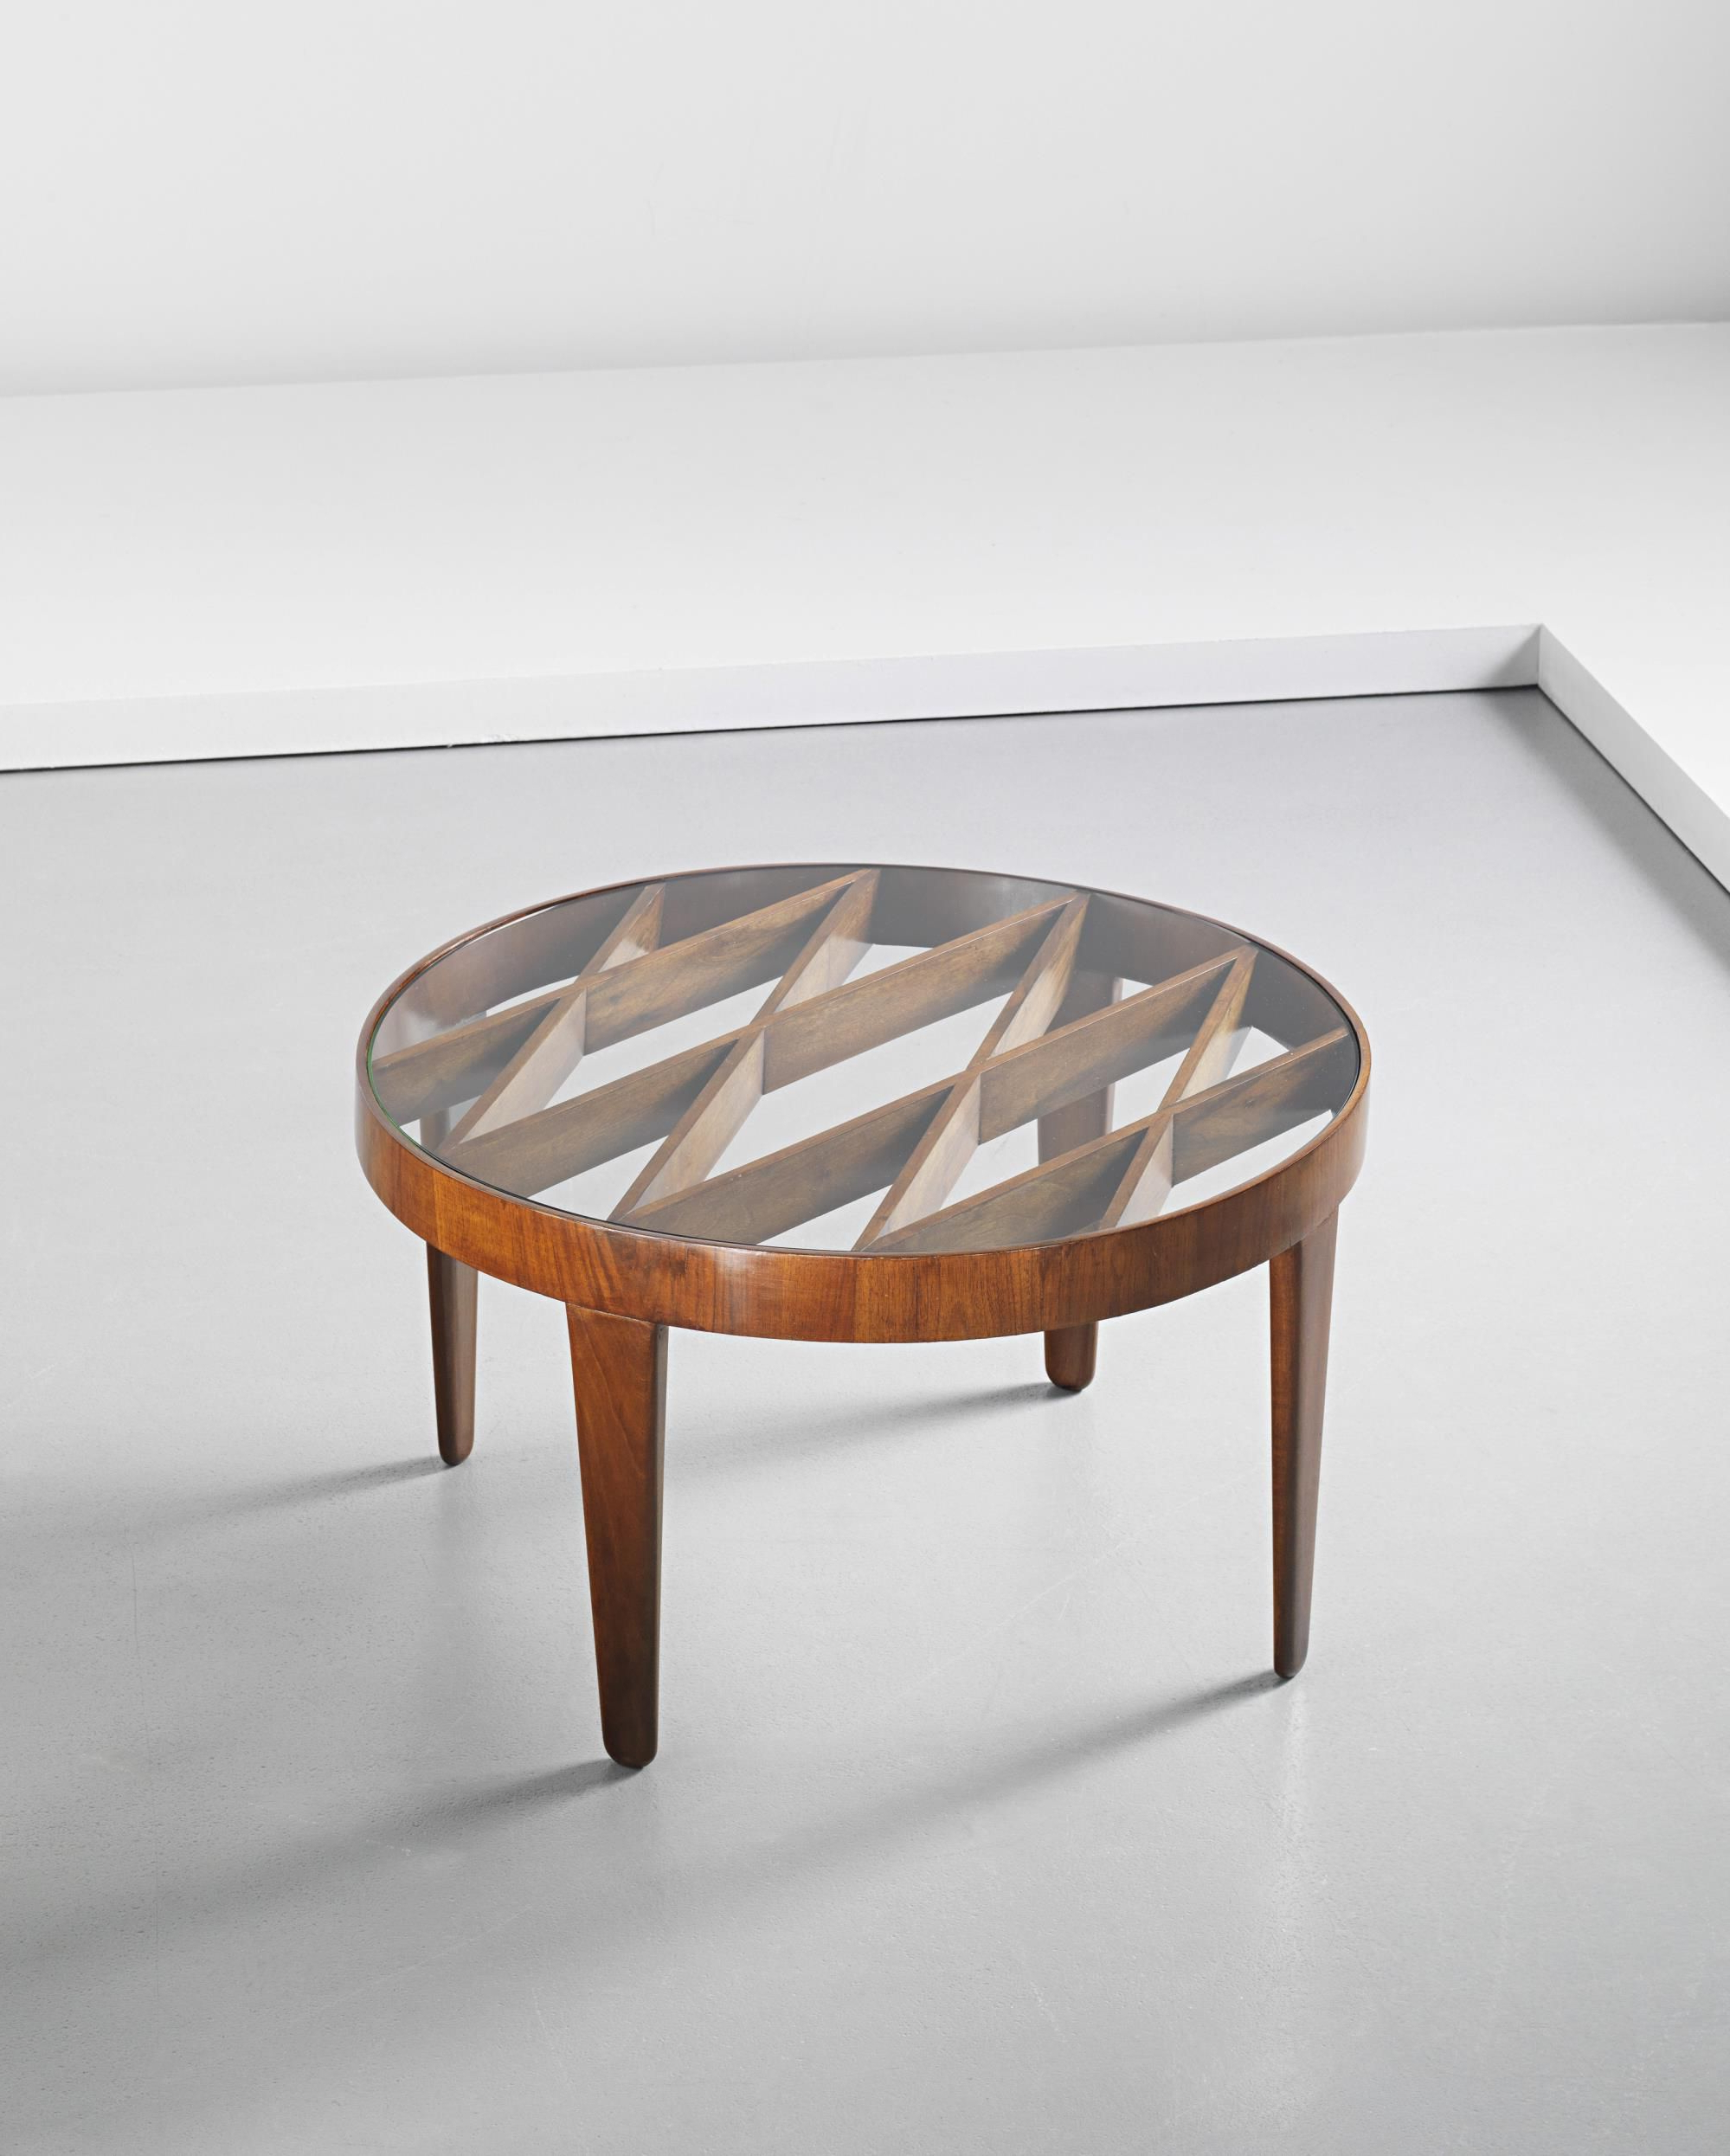 Phillip Brass Console Tables With Well Known Phillips : Uk050212, Gio Ponti, Coffee Table (View 8 of 20)